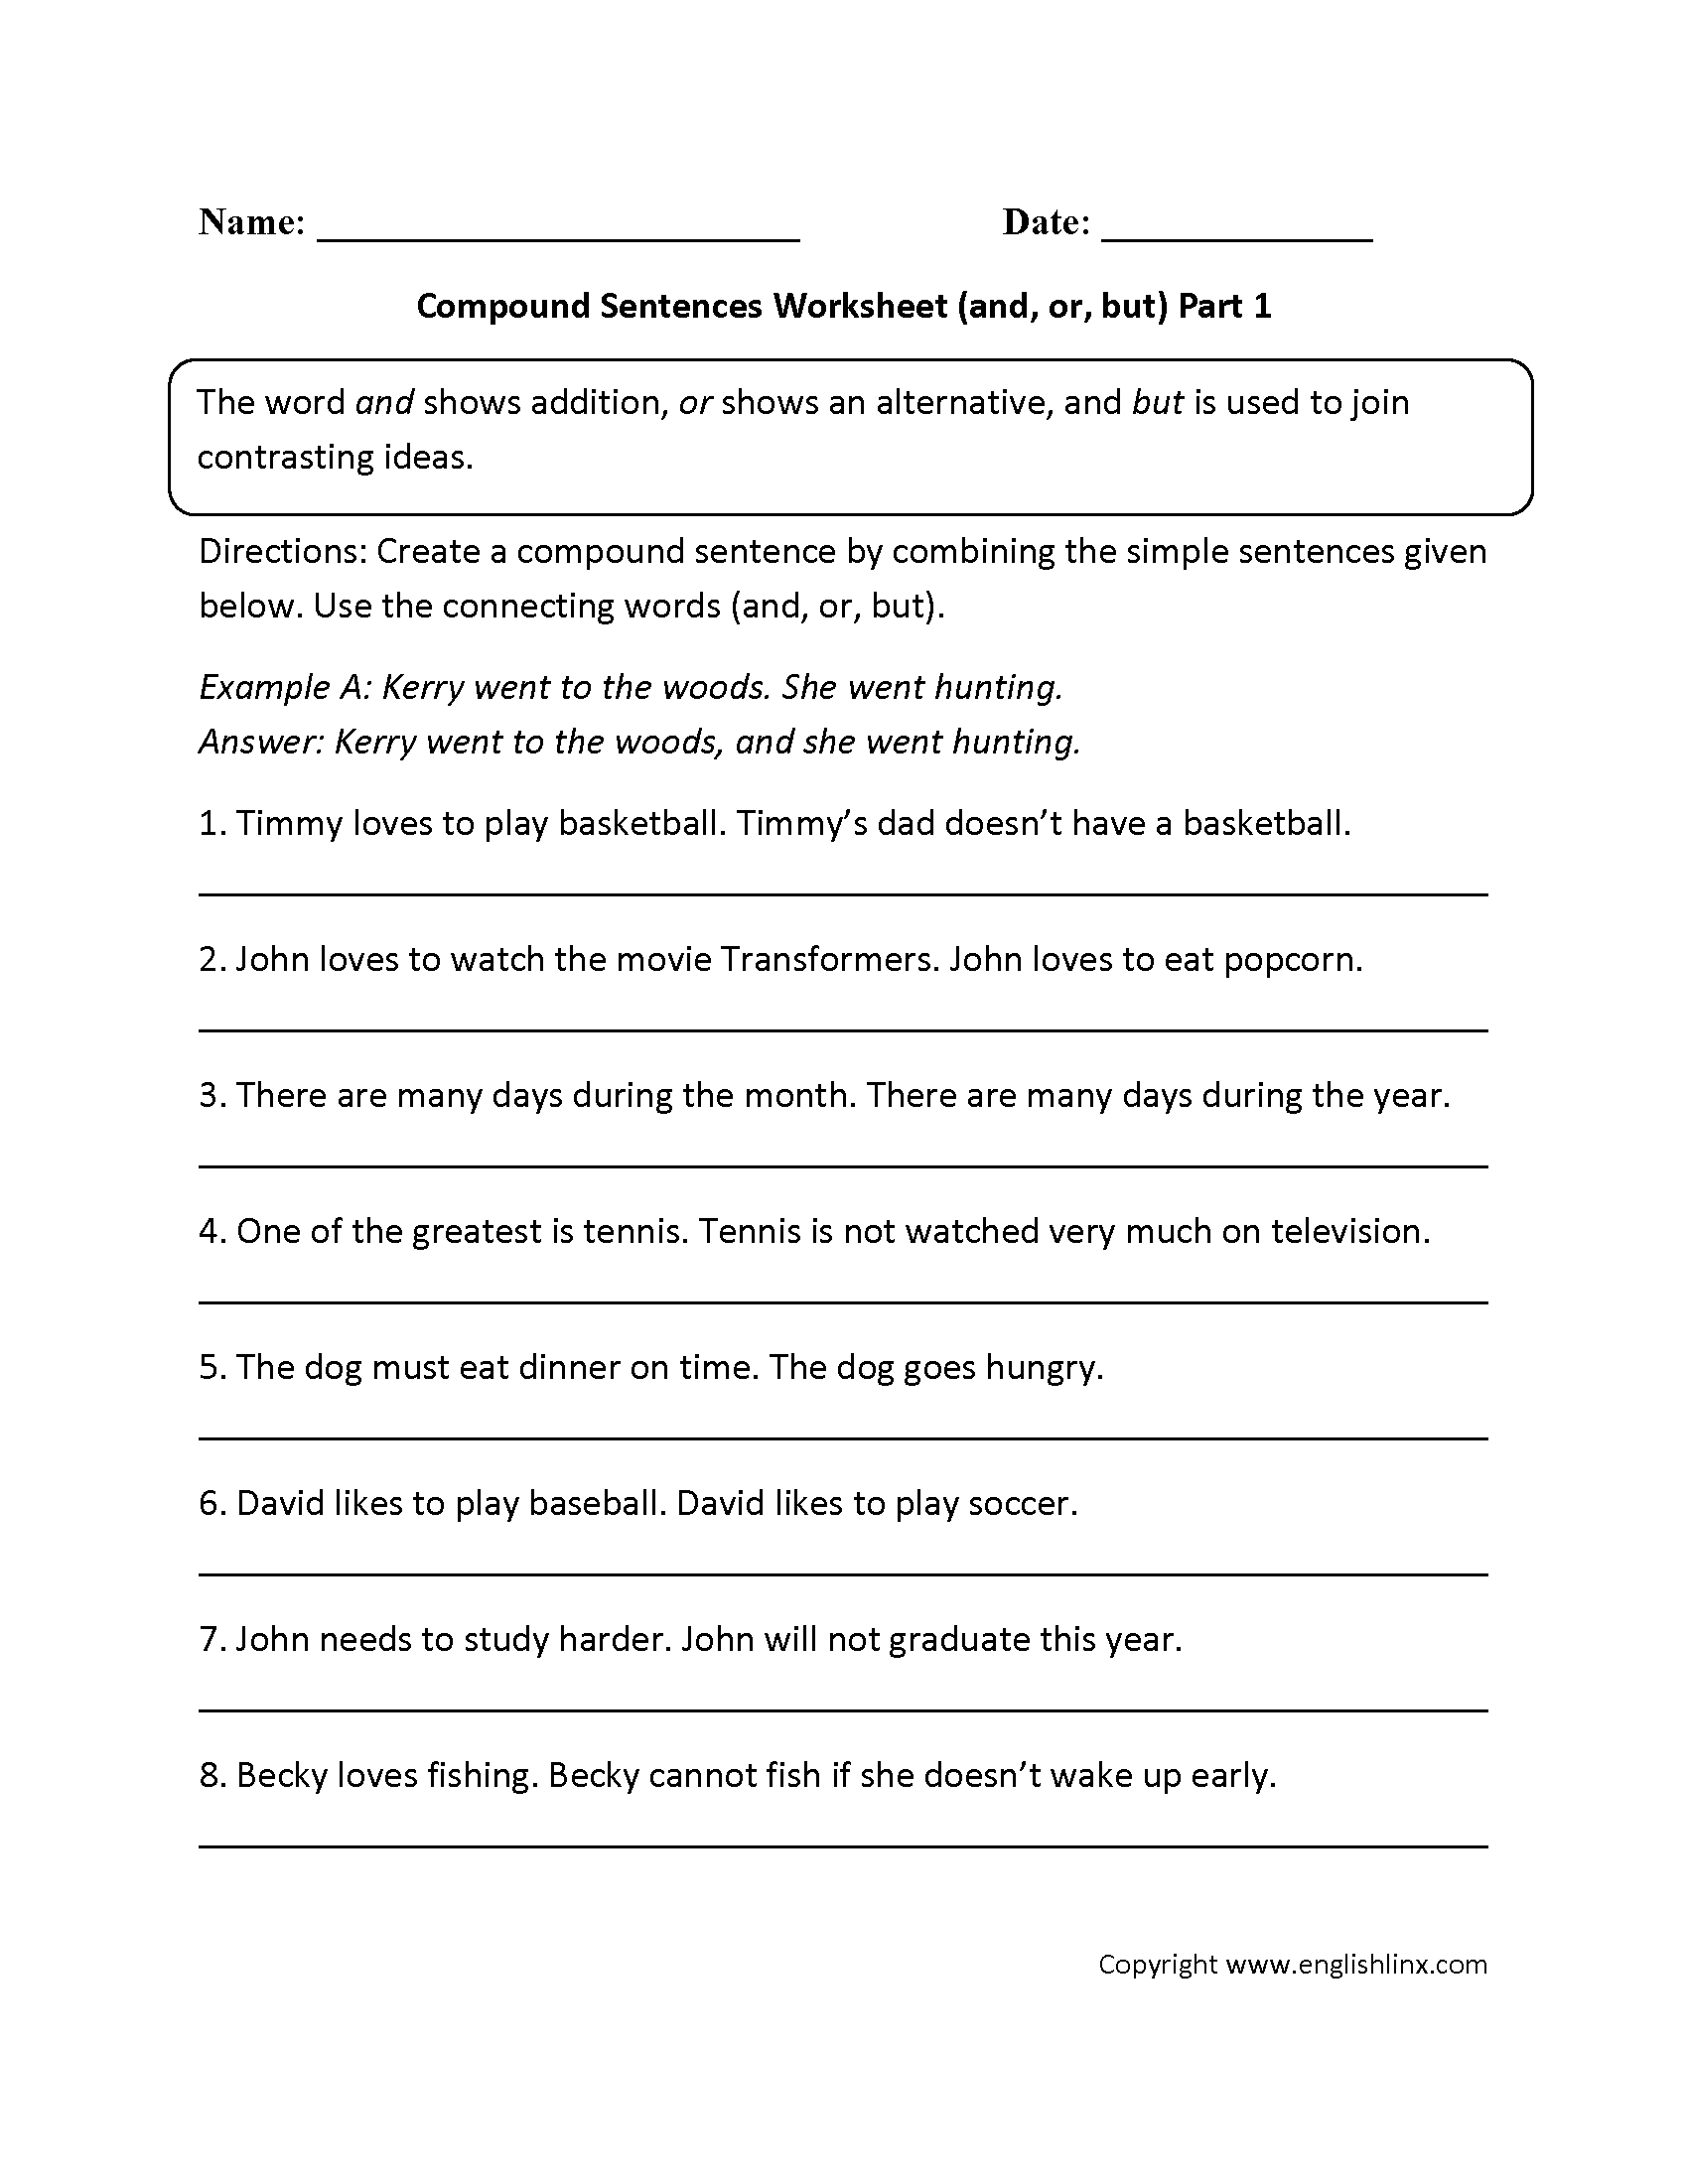 Worksheets Quiz On Types Of Sentences Simple Compound Complex Compound-complex andor and but compound sentences worksheet complex sentencesimple